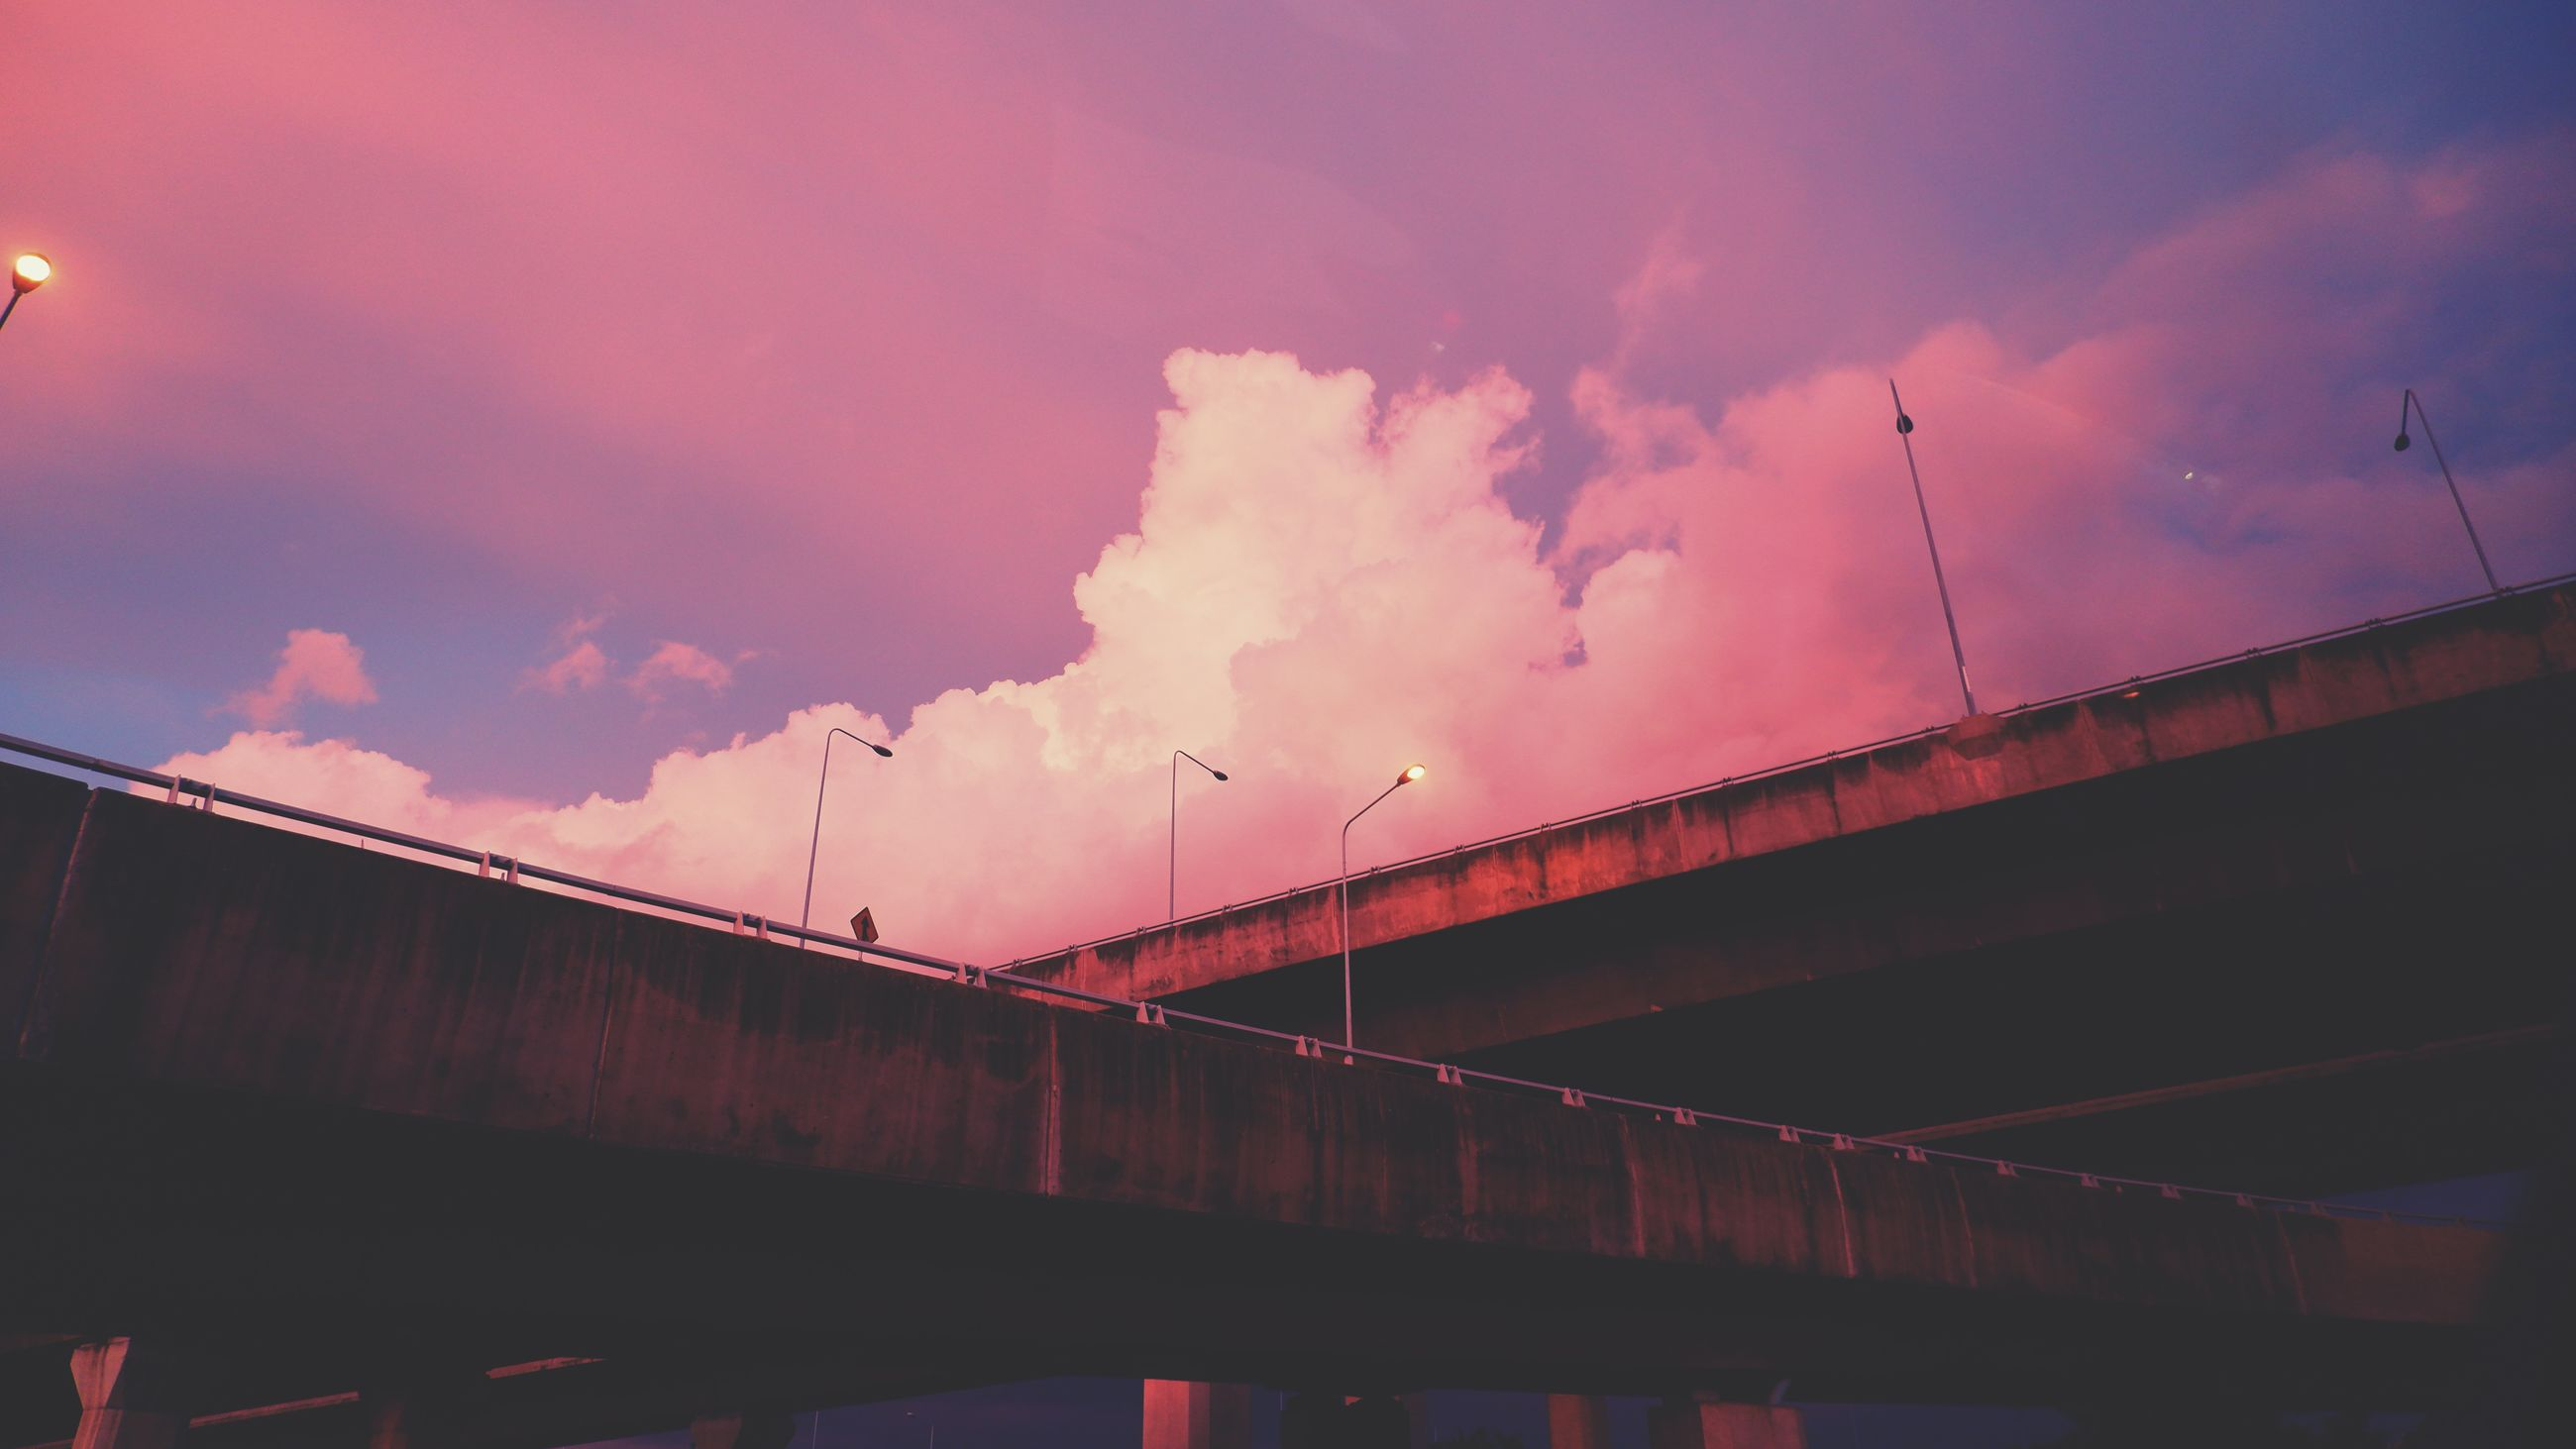 cloud, sky, architecture, built structure, bridge, evening, reflection, sunset, nature, transportation, dusk, night, no people, light, darkness, low angle view, building exterior, outdoors, water, industry, city